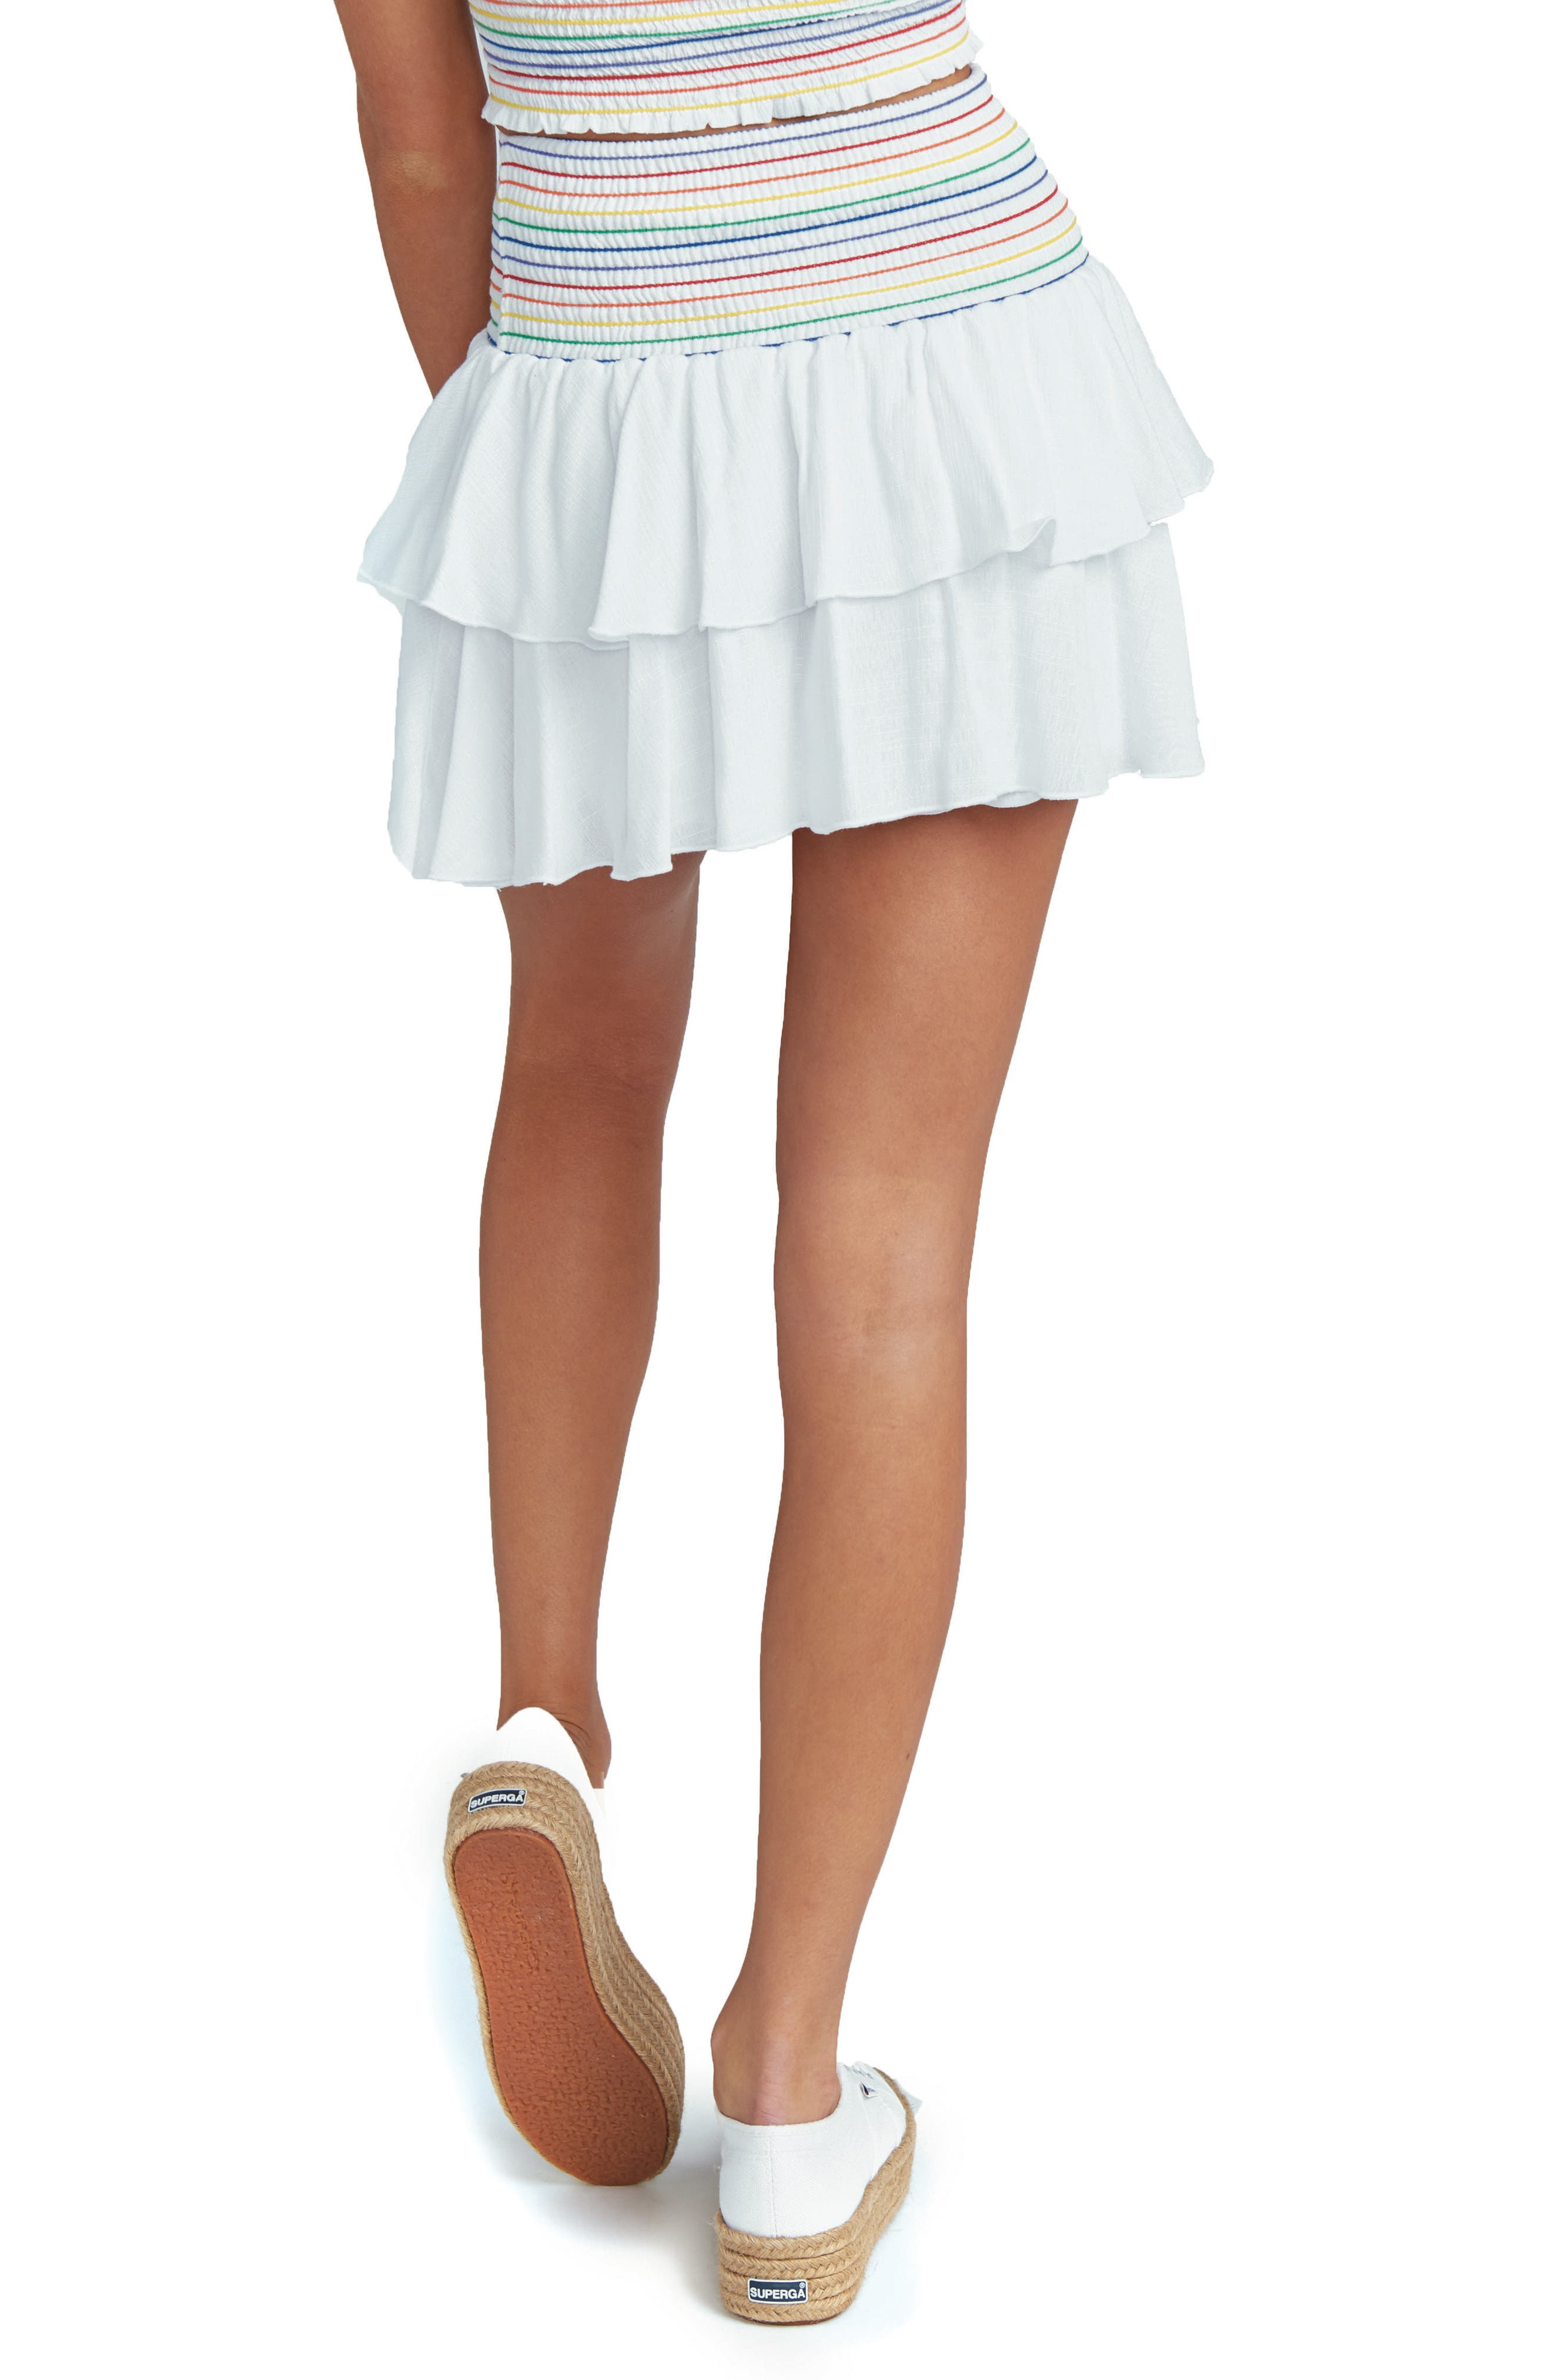 Frolick Ruffle Skort,                             Alternate thumbnail 3, color,                             White Cruise With Rainbow